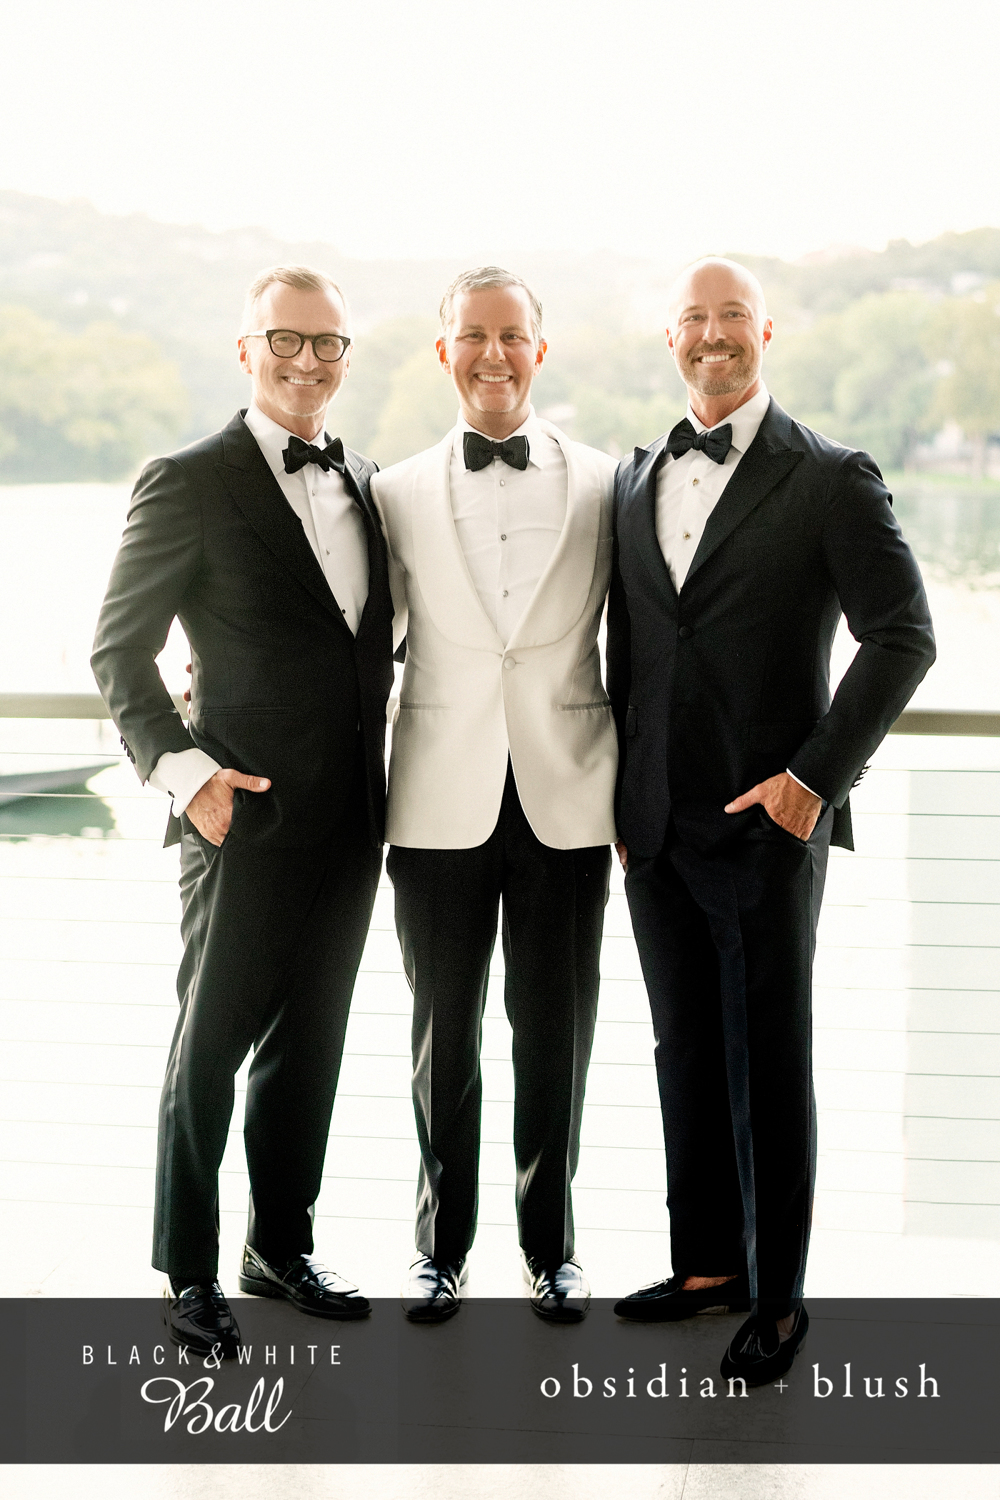 Dr. Piazza posing with two other men all in tuxedoes